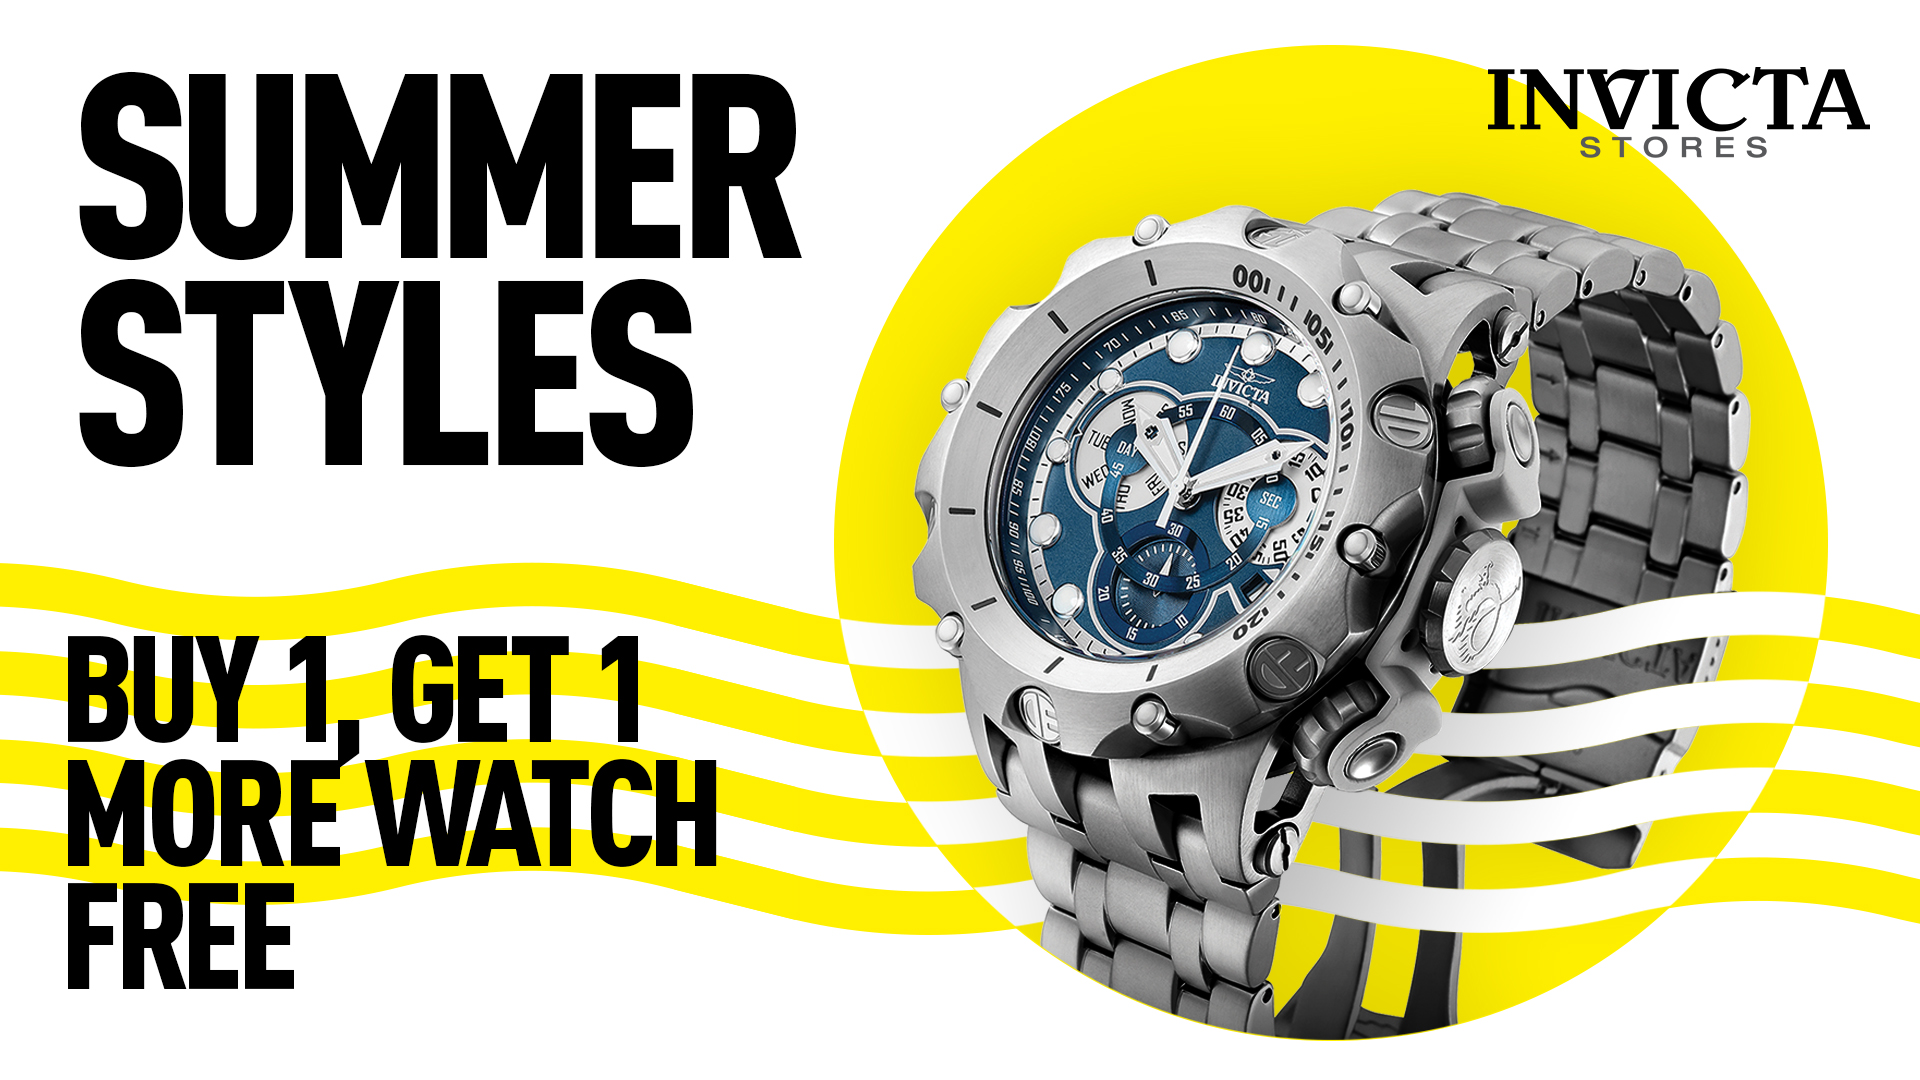 Buy 1 Get 1 Free from Invicta